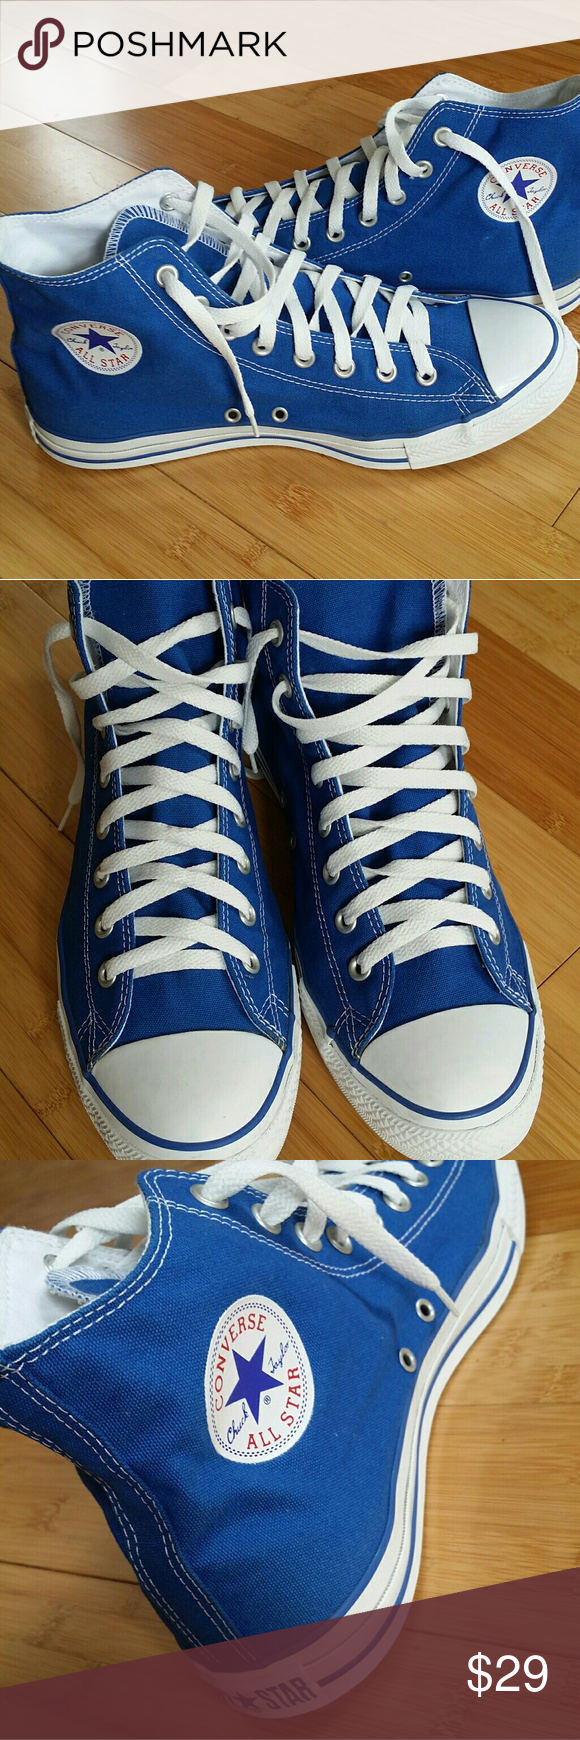 46831b6ecb0de0 CONVERSE CHUCK TAYLOR ALL STAR SNEAKERS. SIZE 11. WOMEN S 13. HIGH TOP.  LACE UP. ROYAL BLUE. HAND WASHED . CONVERSE Shoes Sneakers